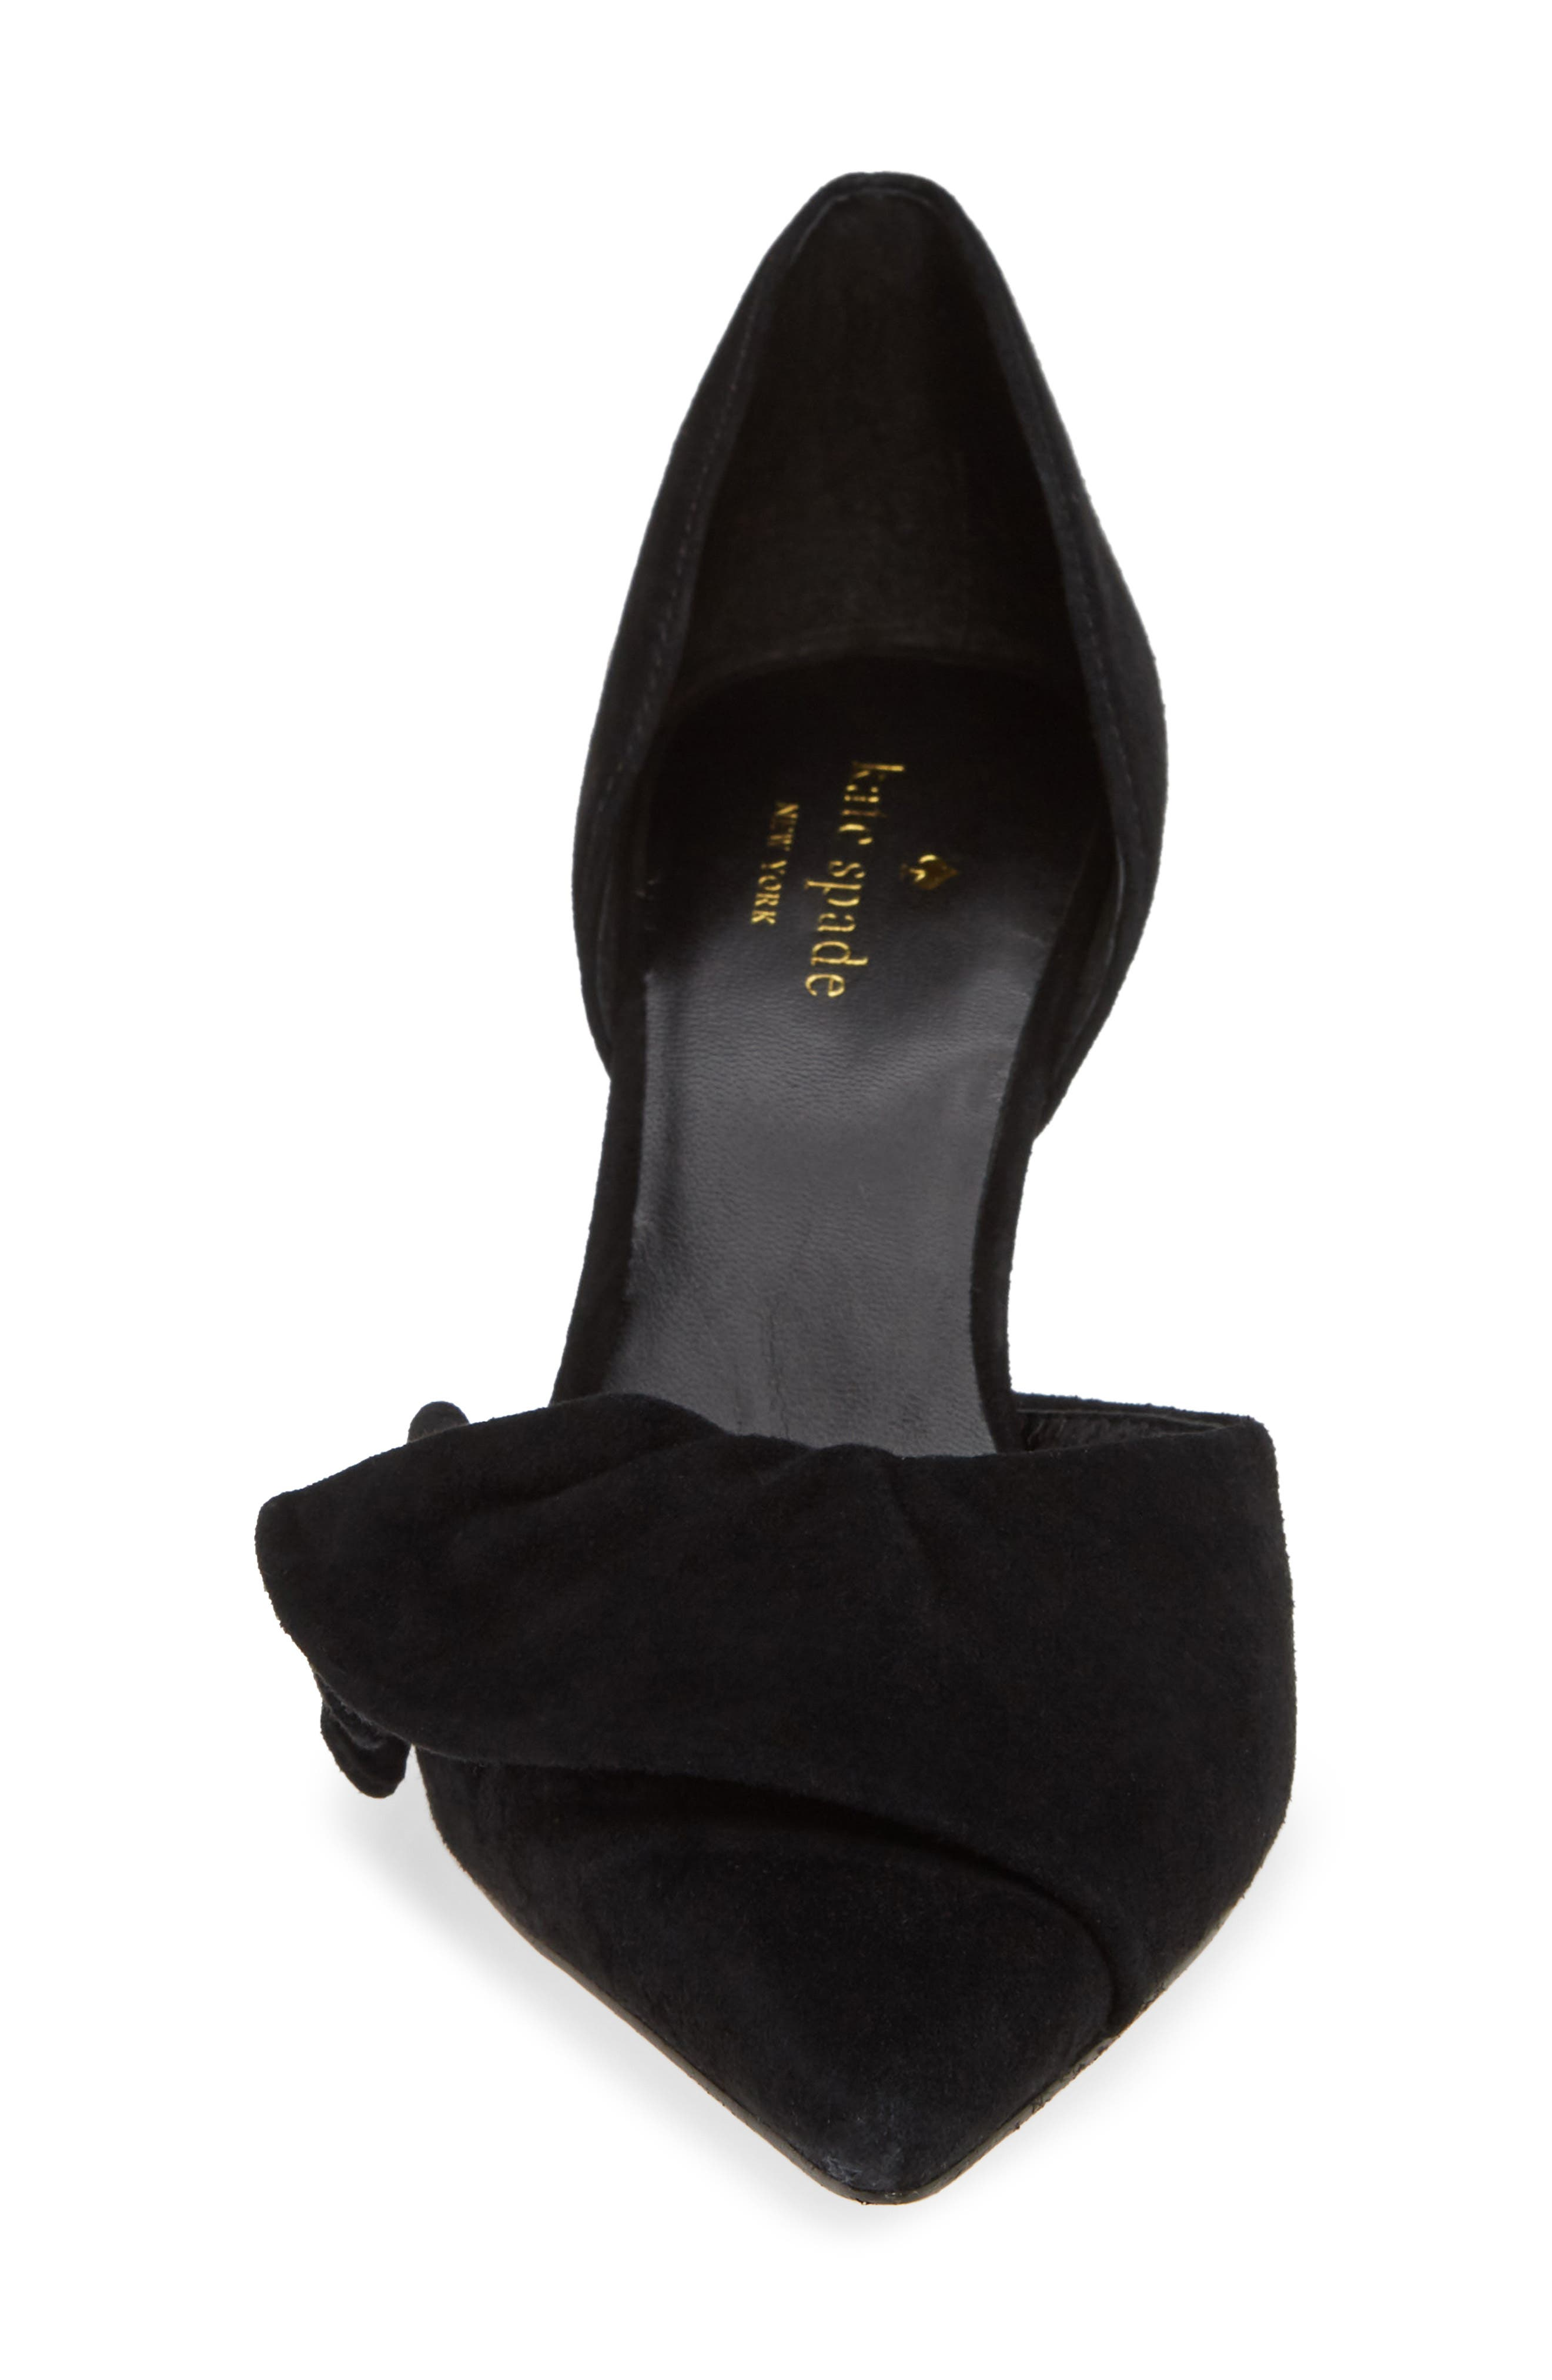 KATE SPADE NEW YORK,                             shayna d'orsay pump,                             Alternate thumbnail 4, color,                             006